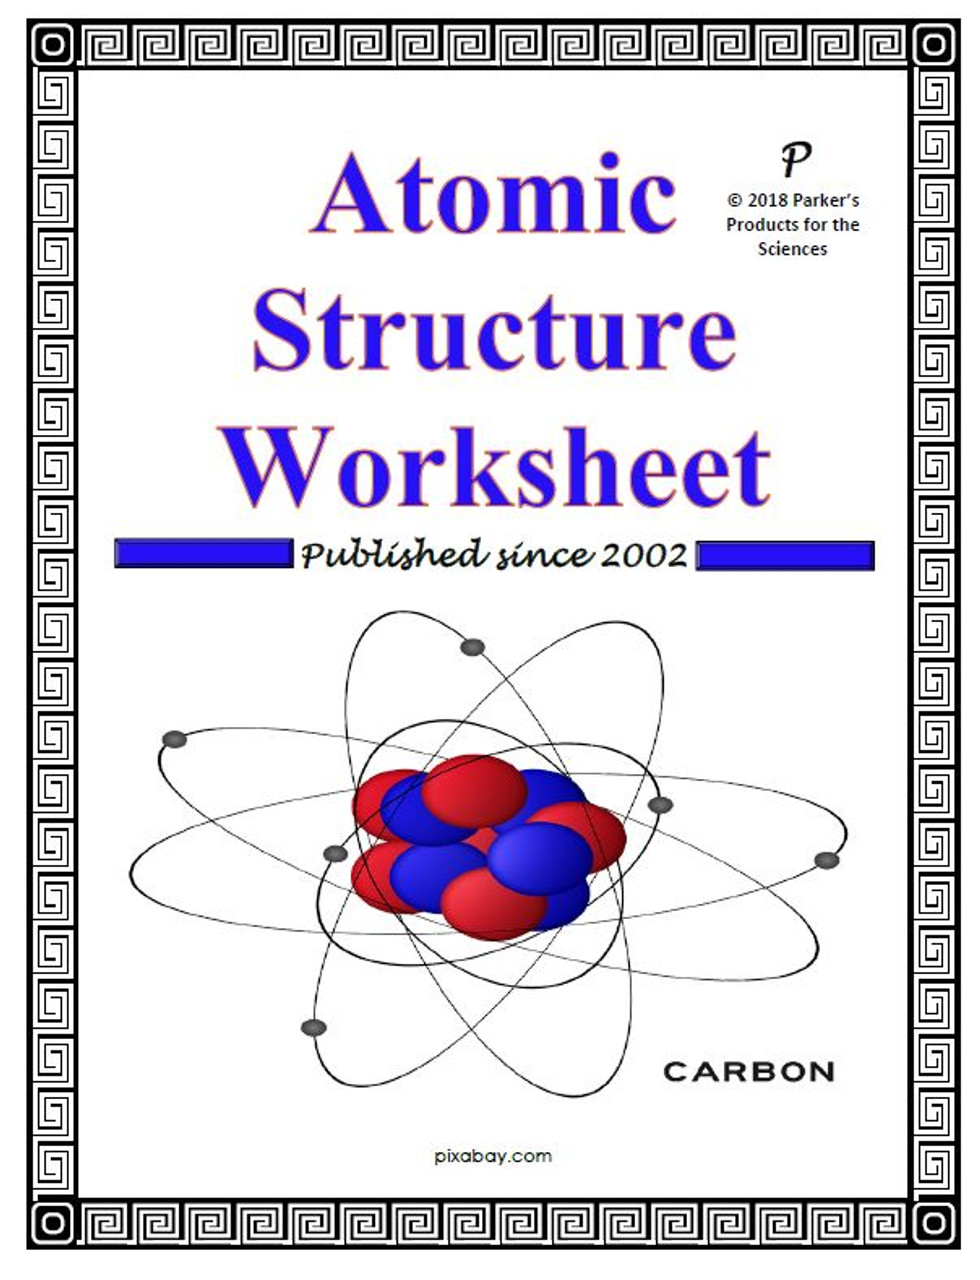 Atomic Structure Worksheet - Amped Up Learning [ 1280 x 980 Pixel ]